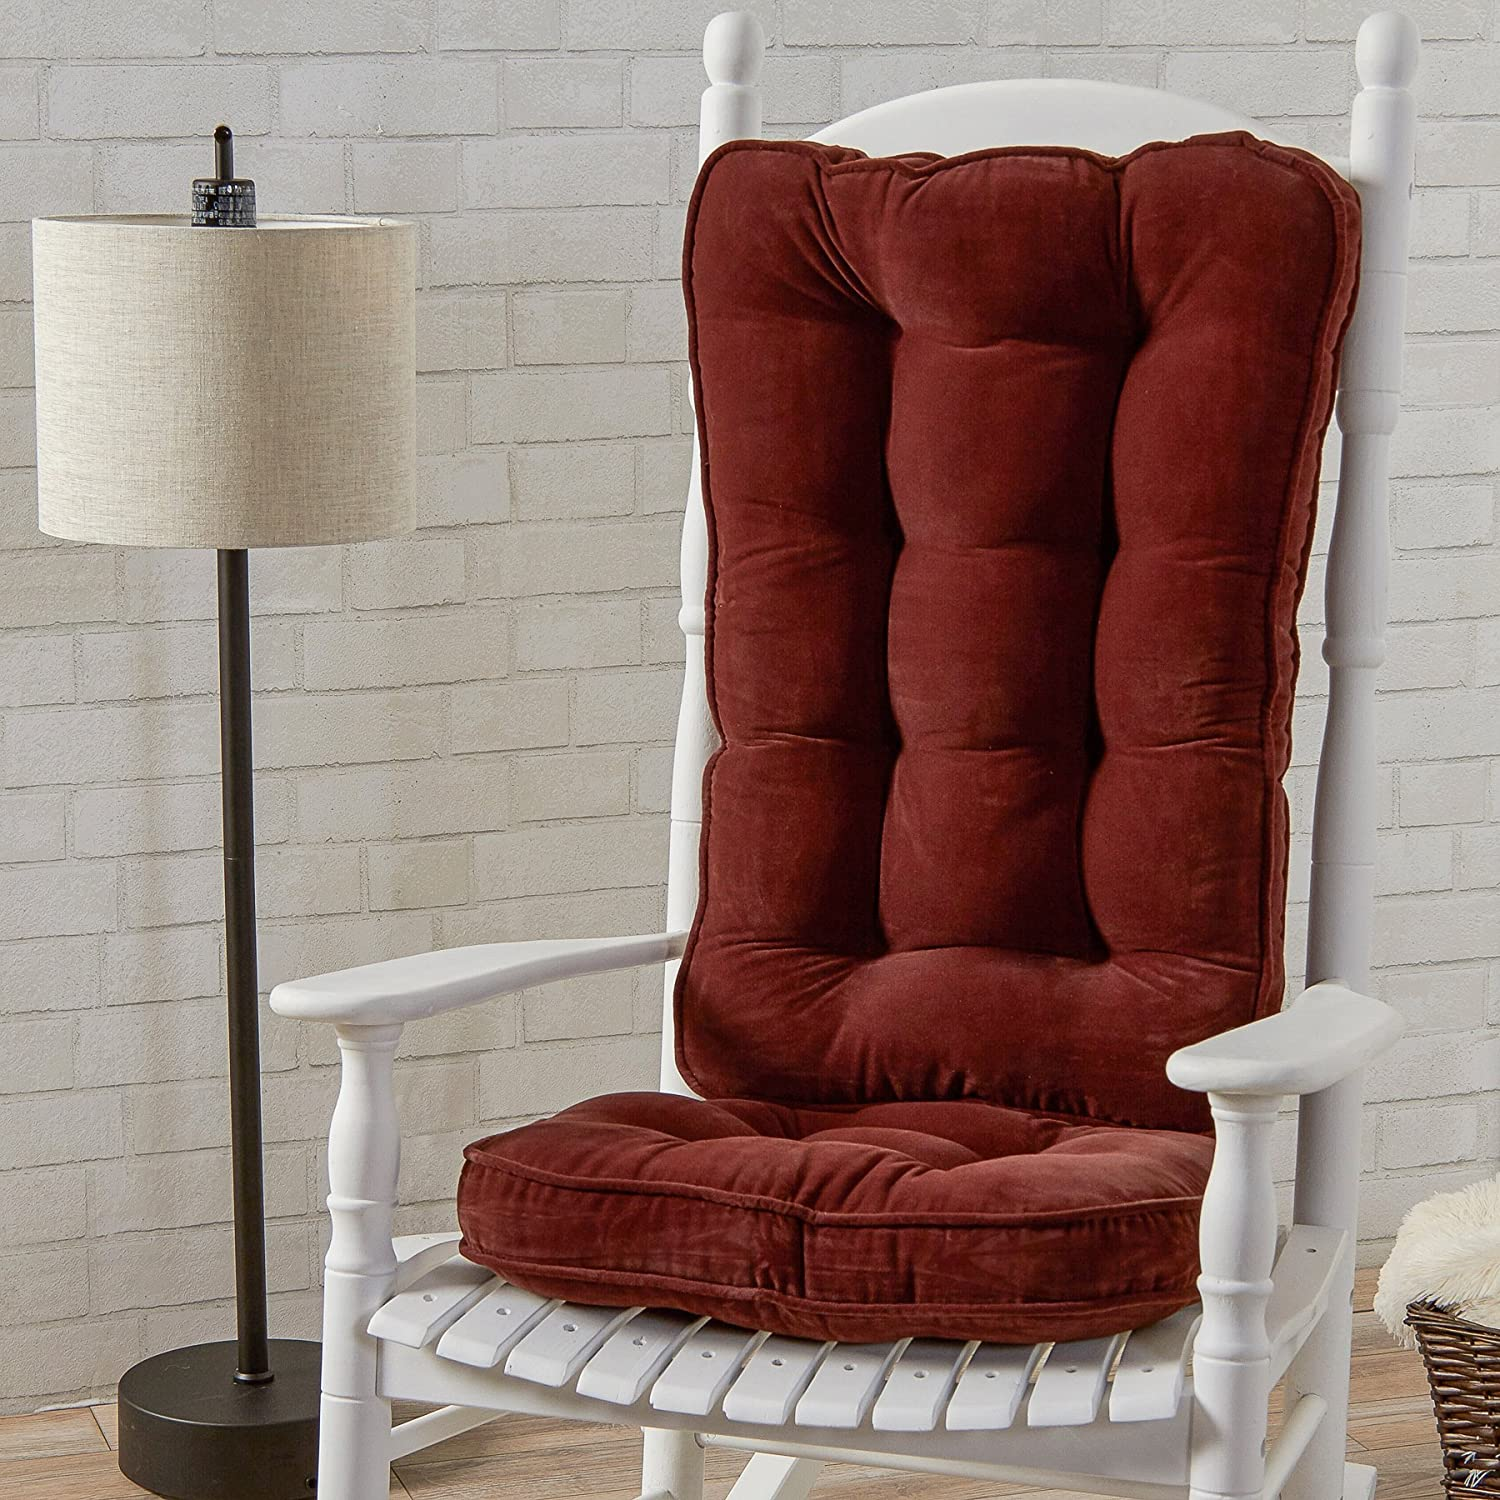 Amazon Greendale Home Fashions Jumbo Rocking Chair Cushion